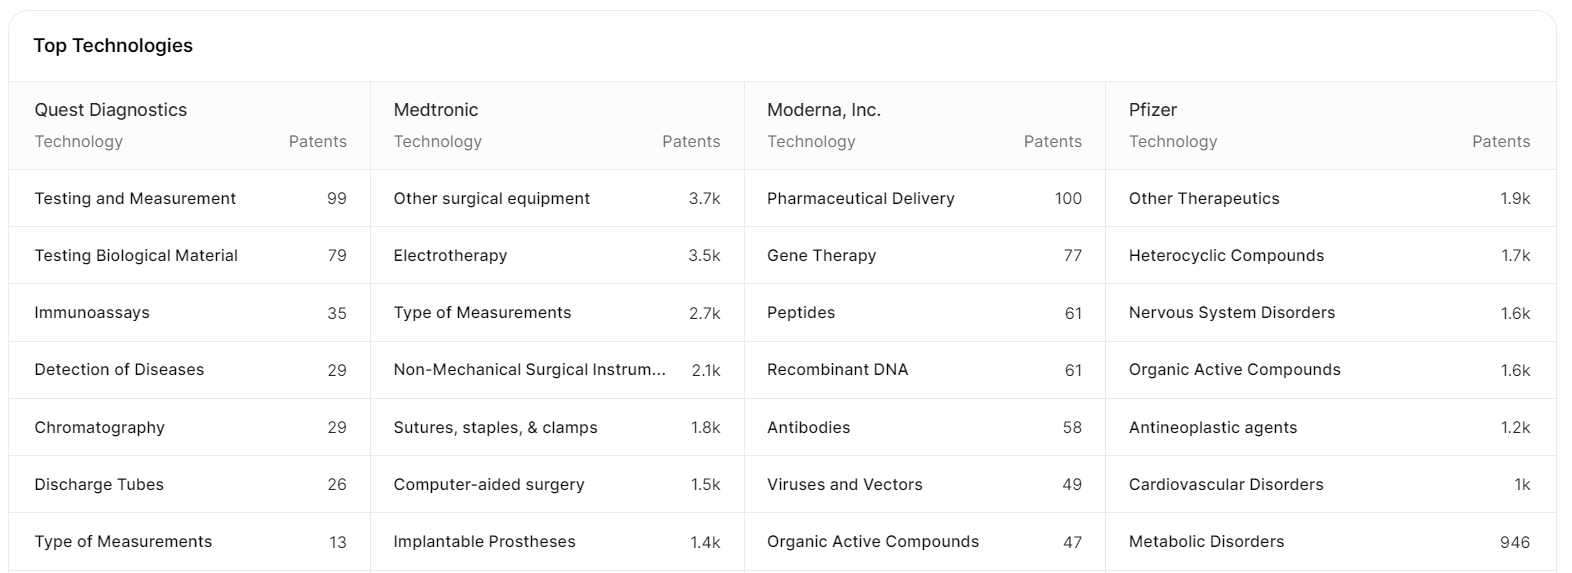 Top technologies for Quest Diagnostics, Medtronic, Moderna, and Pfizer